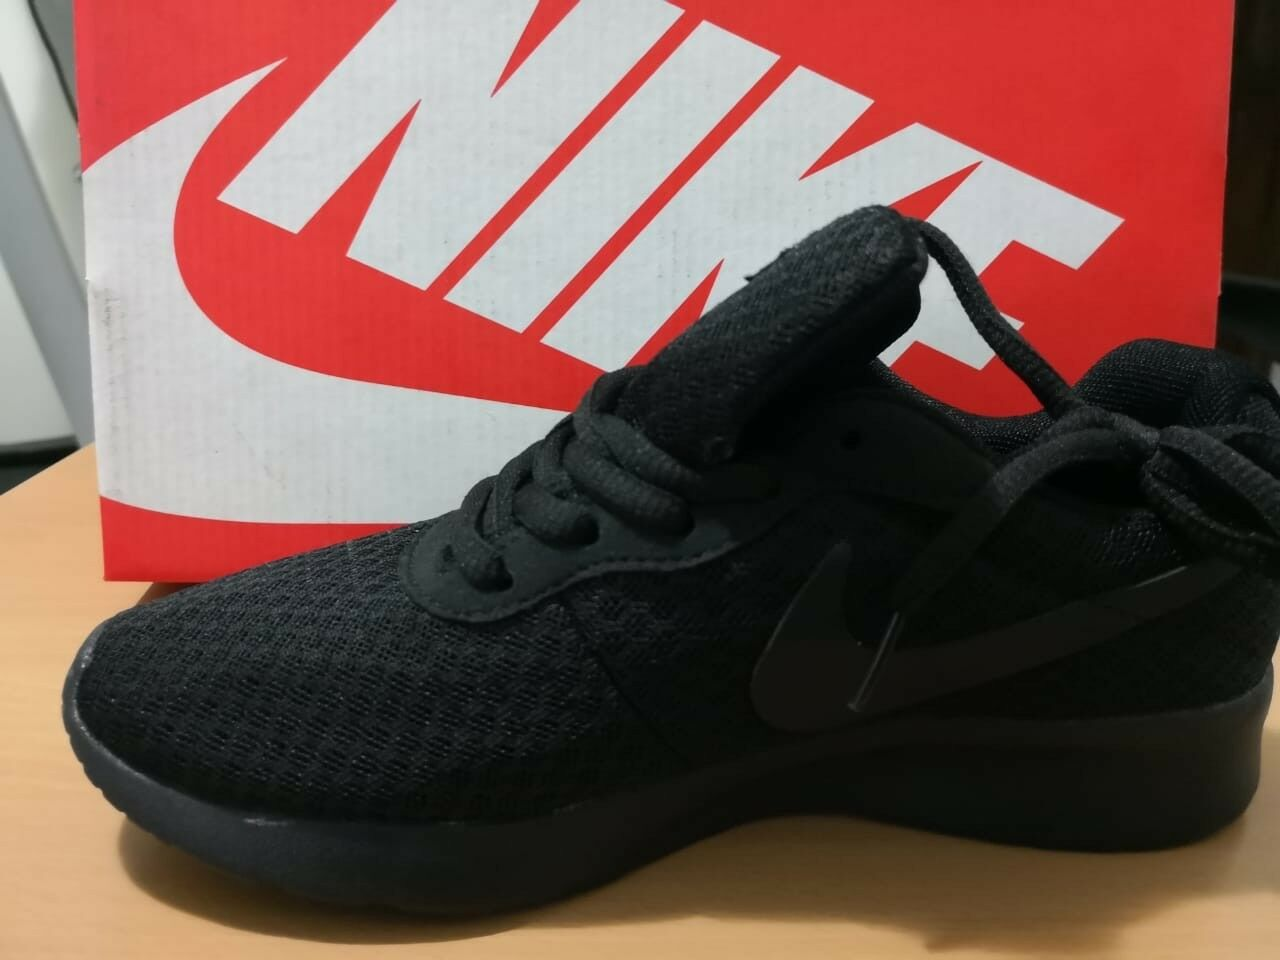 Nike tanjun black 2 sizes available, NEW IN BOX    LAST PIECES